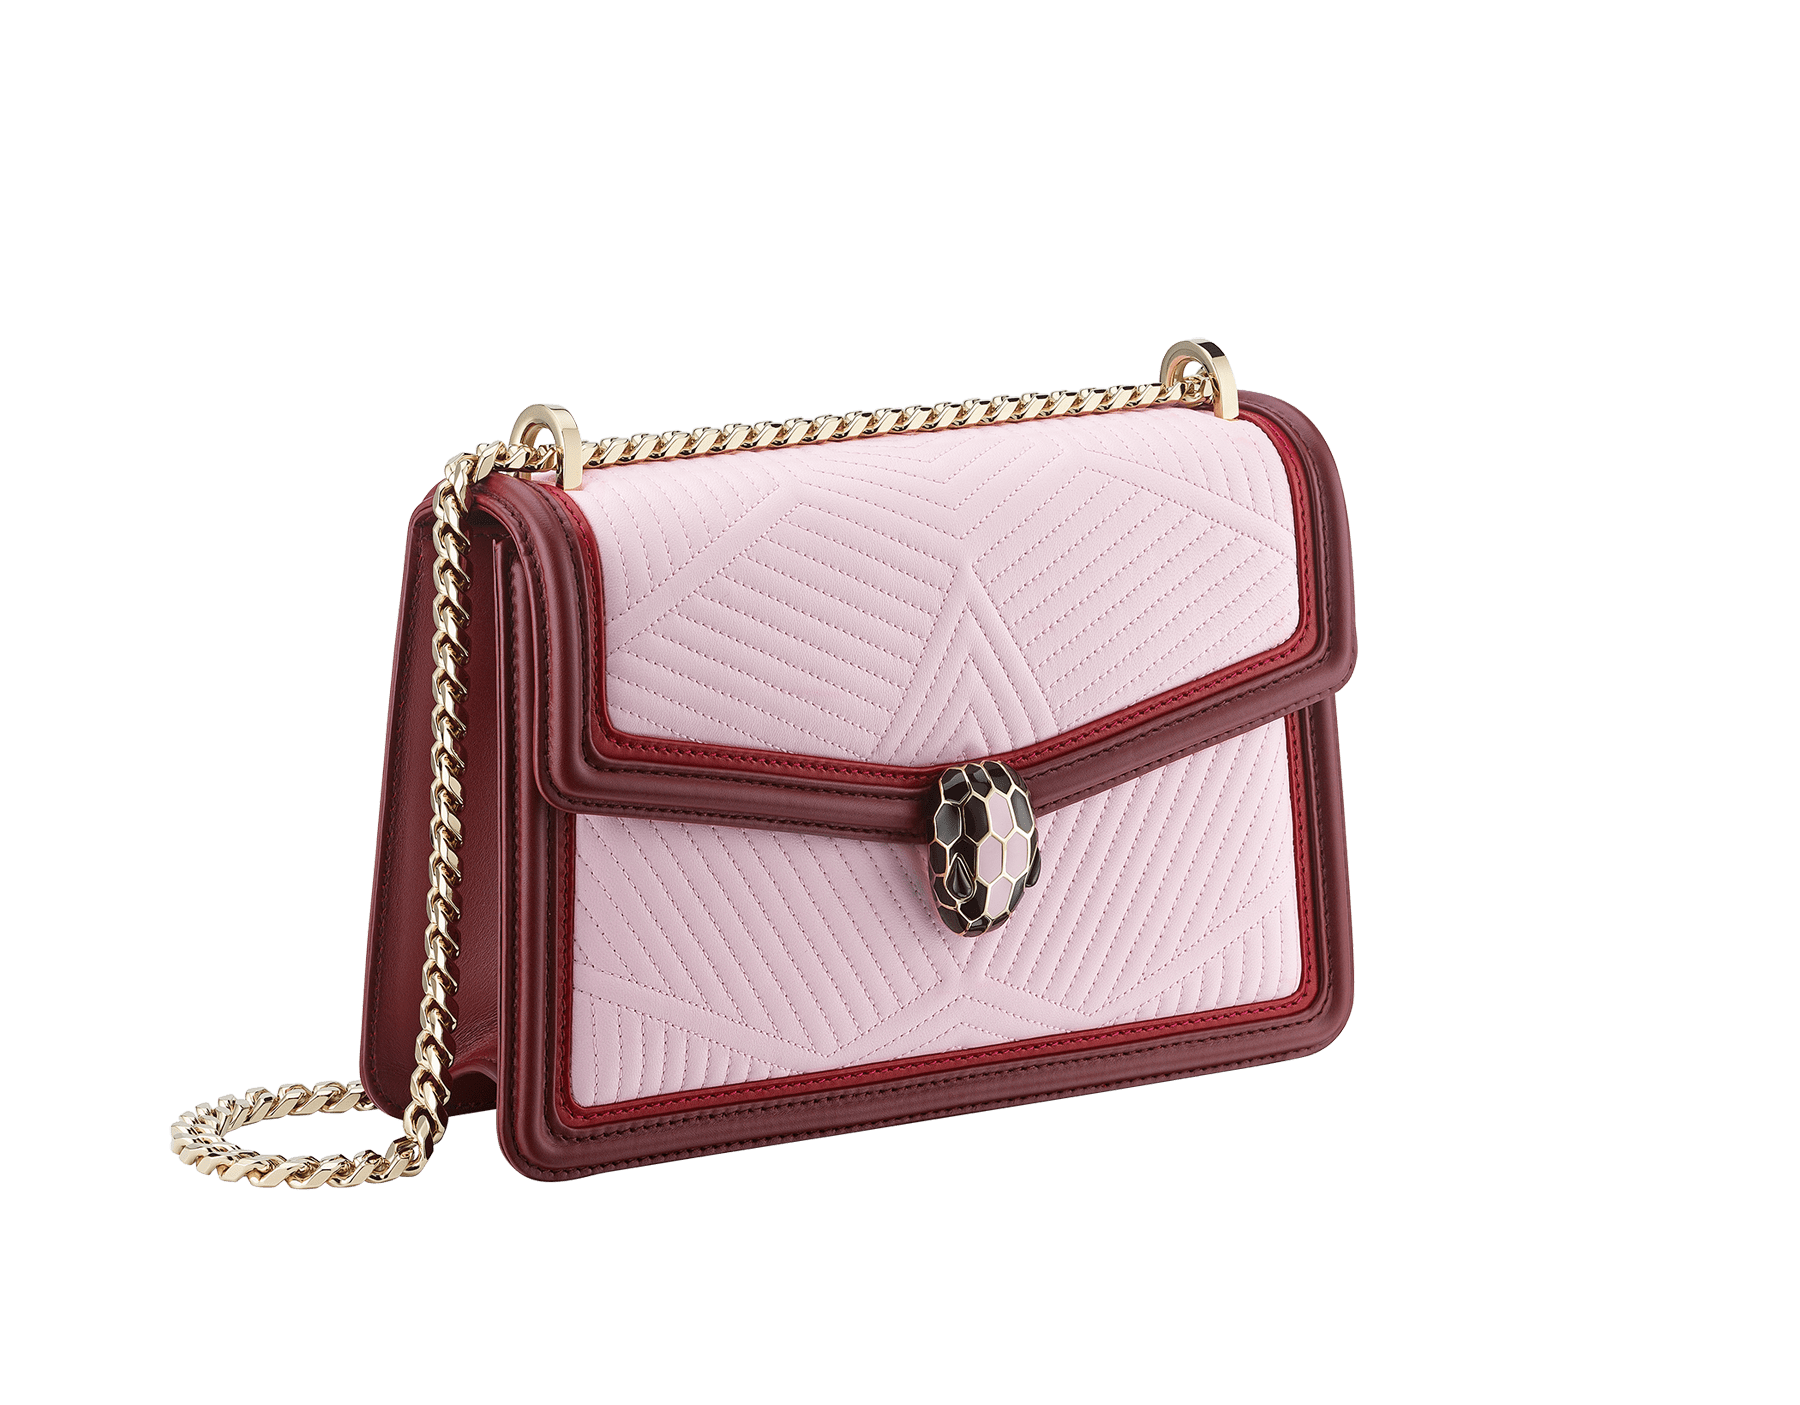 """Serpenti Diamond Blast"" shoulder bag in rosa di francia quilted calf leather and Roman garnet calf leather frames. Iconic snakehead closure in light gold plated brass enriched with black and rosa di francia enamel and black onyx eyes. 289462 image 2"